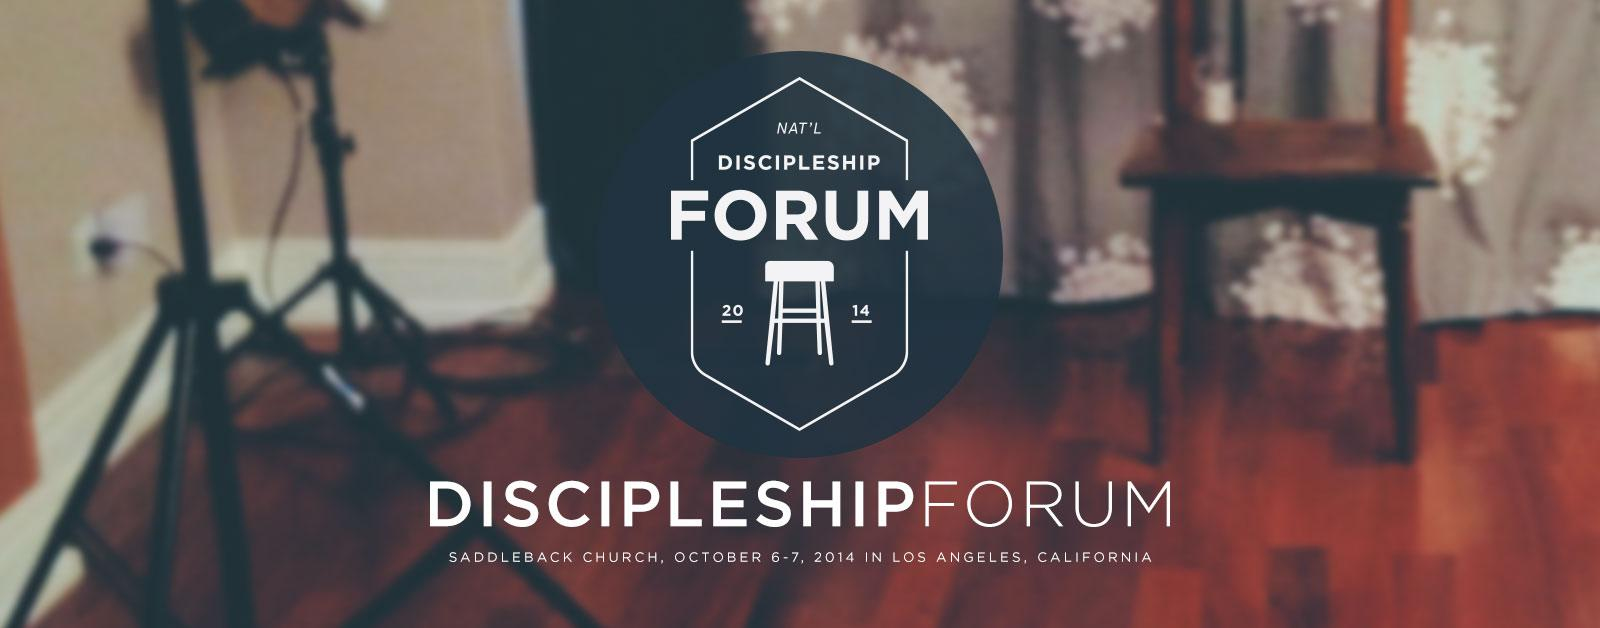 discipleship.org forums